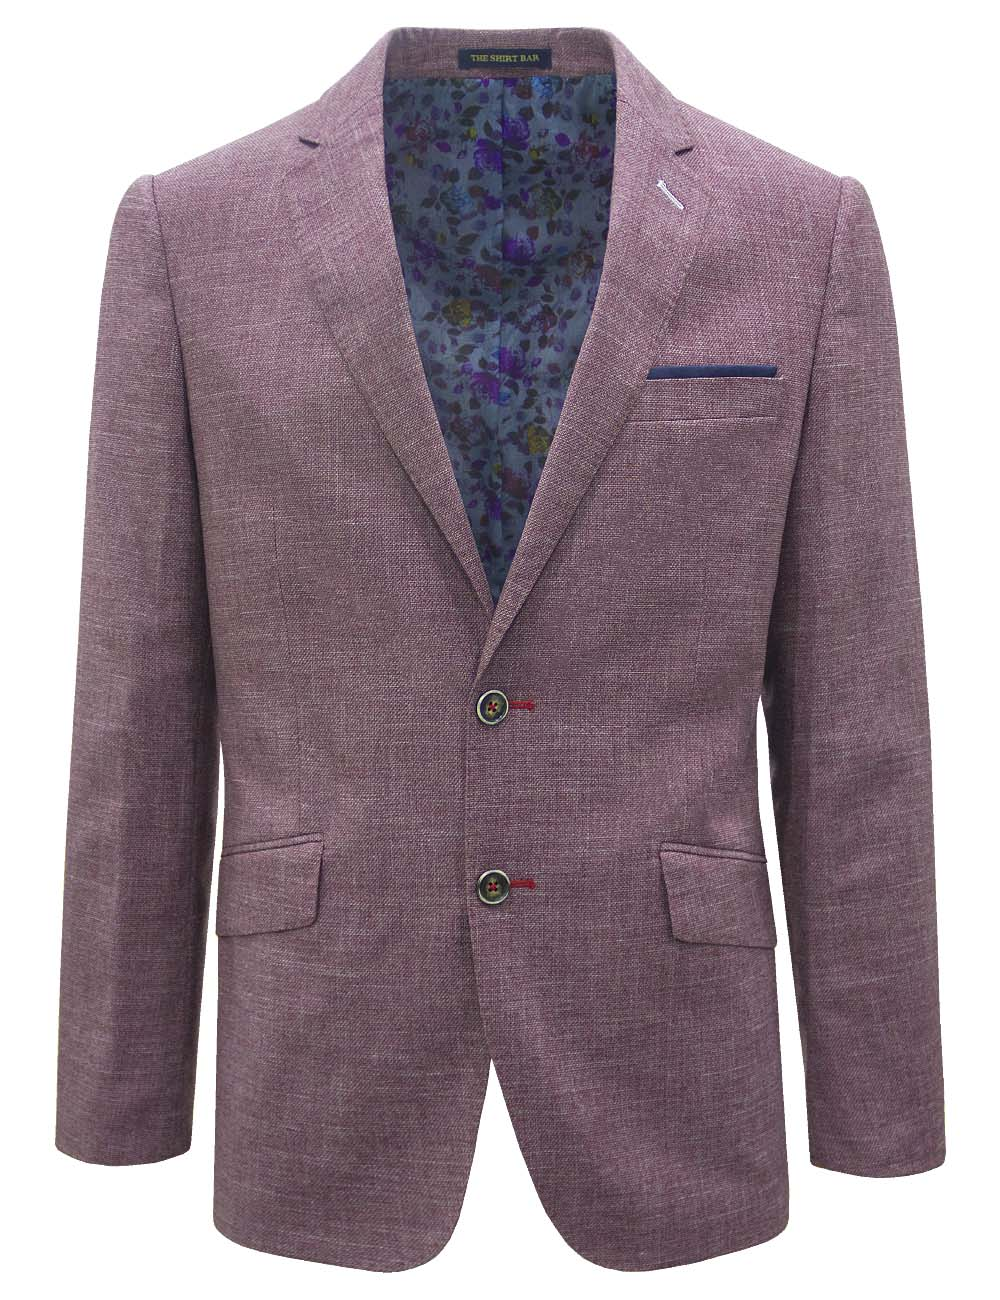 Royal Red Slim / Tailored Fit Single Breasted Blazer - S2B2.4